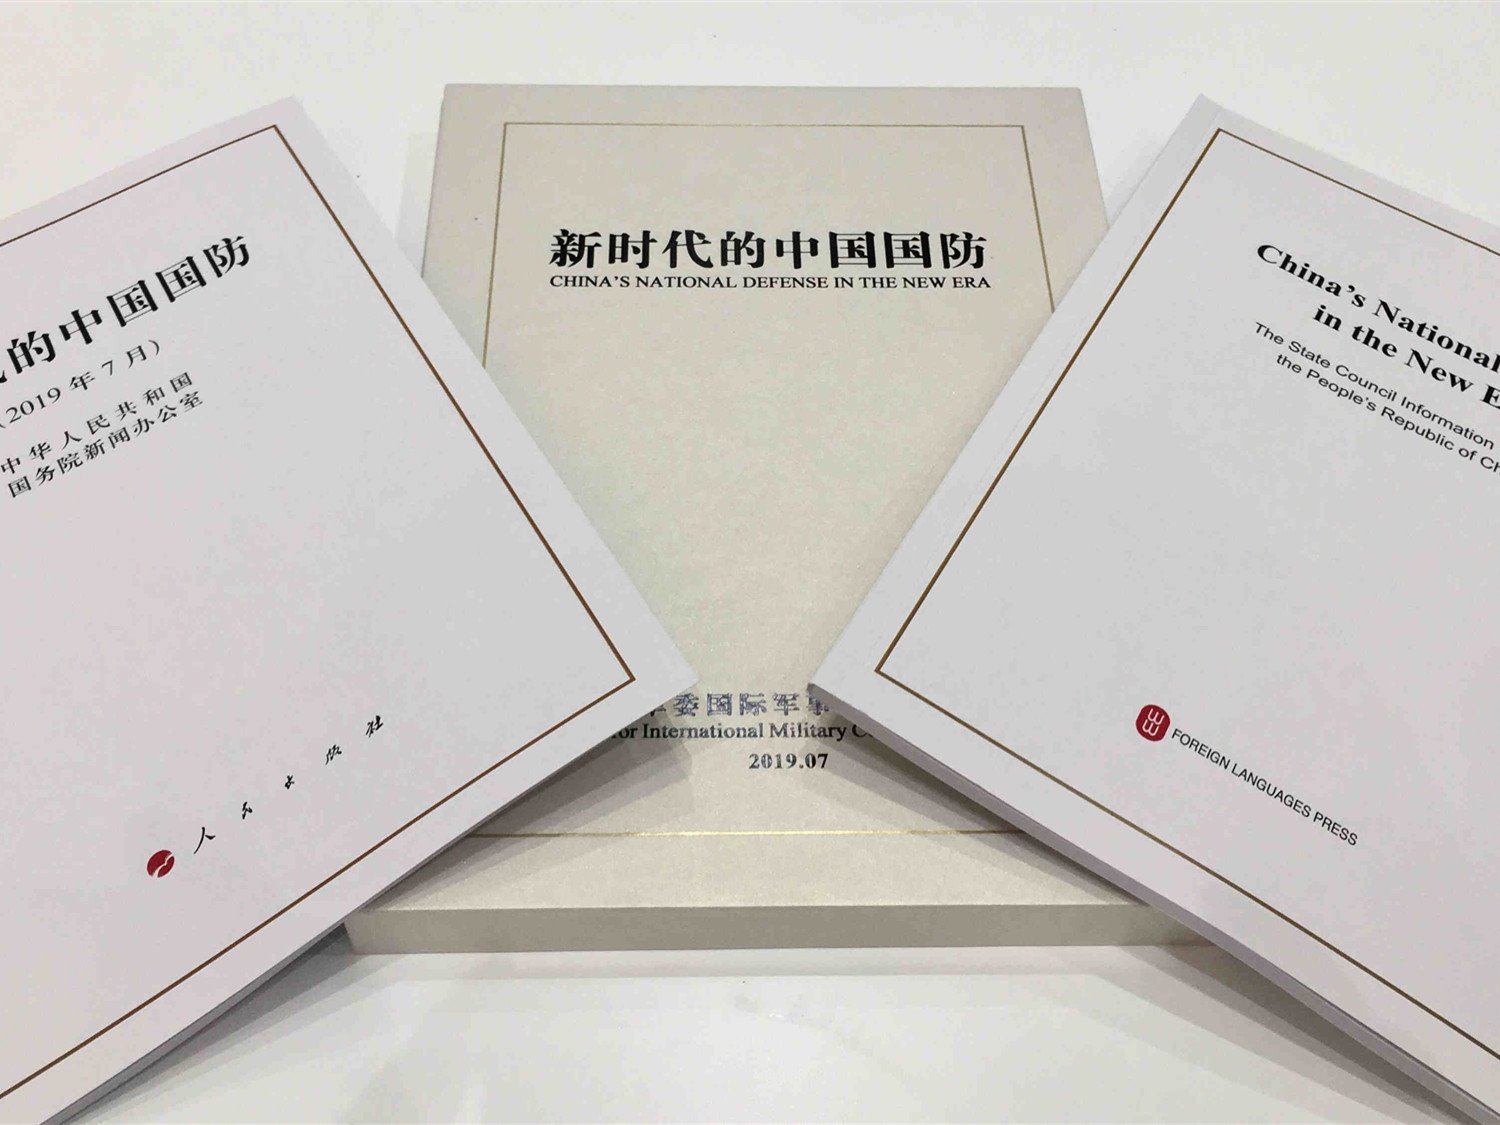 China says it will never seek hegemony in national defense white paper